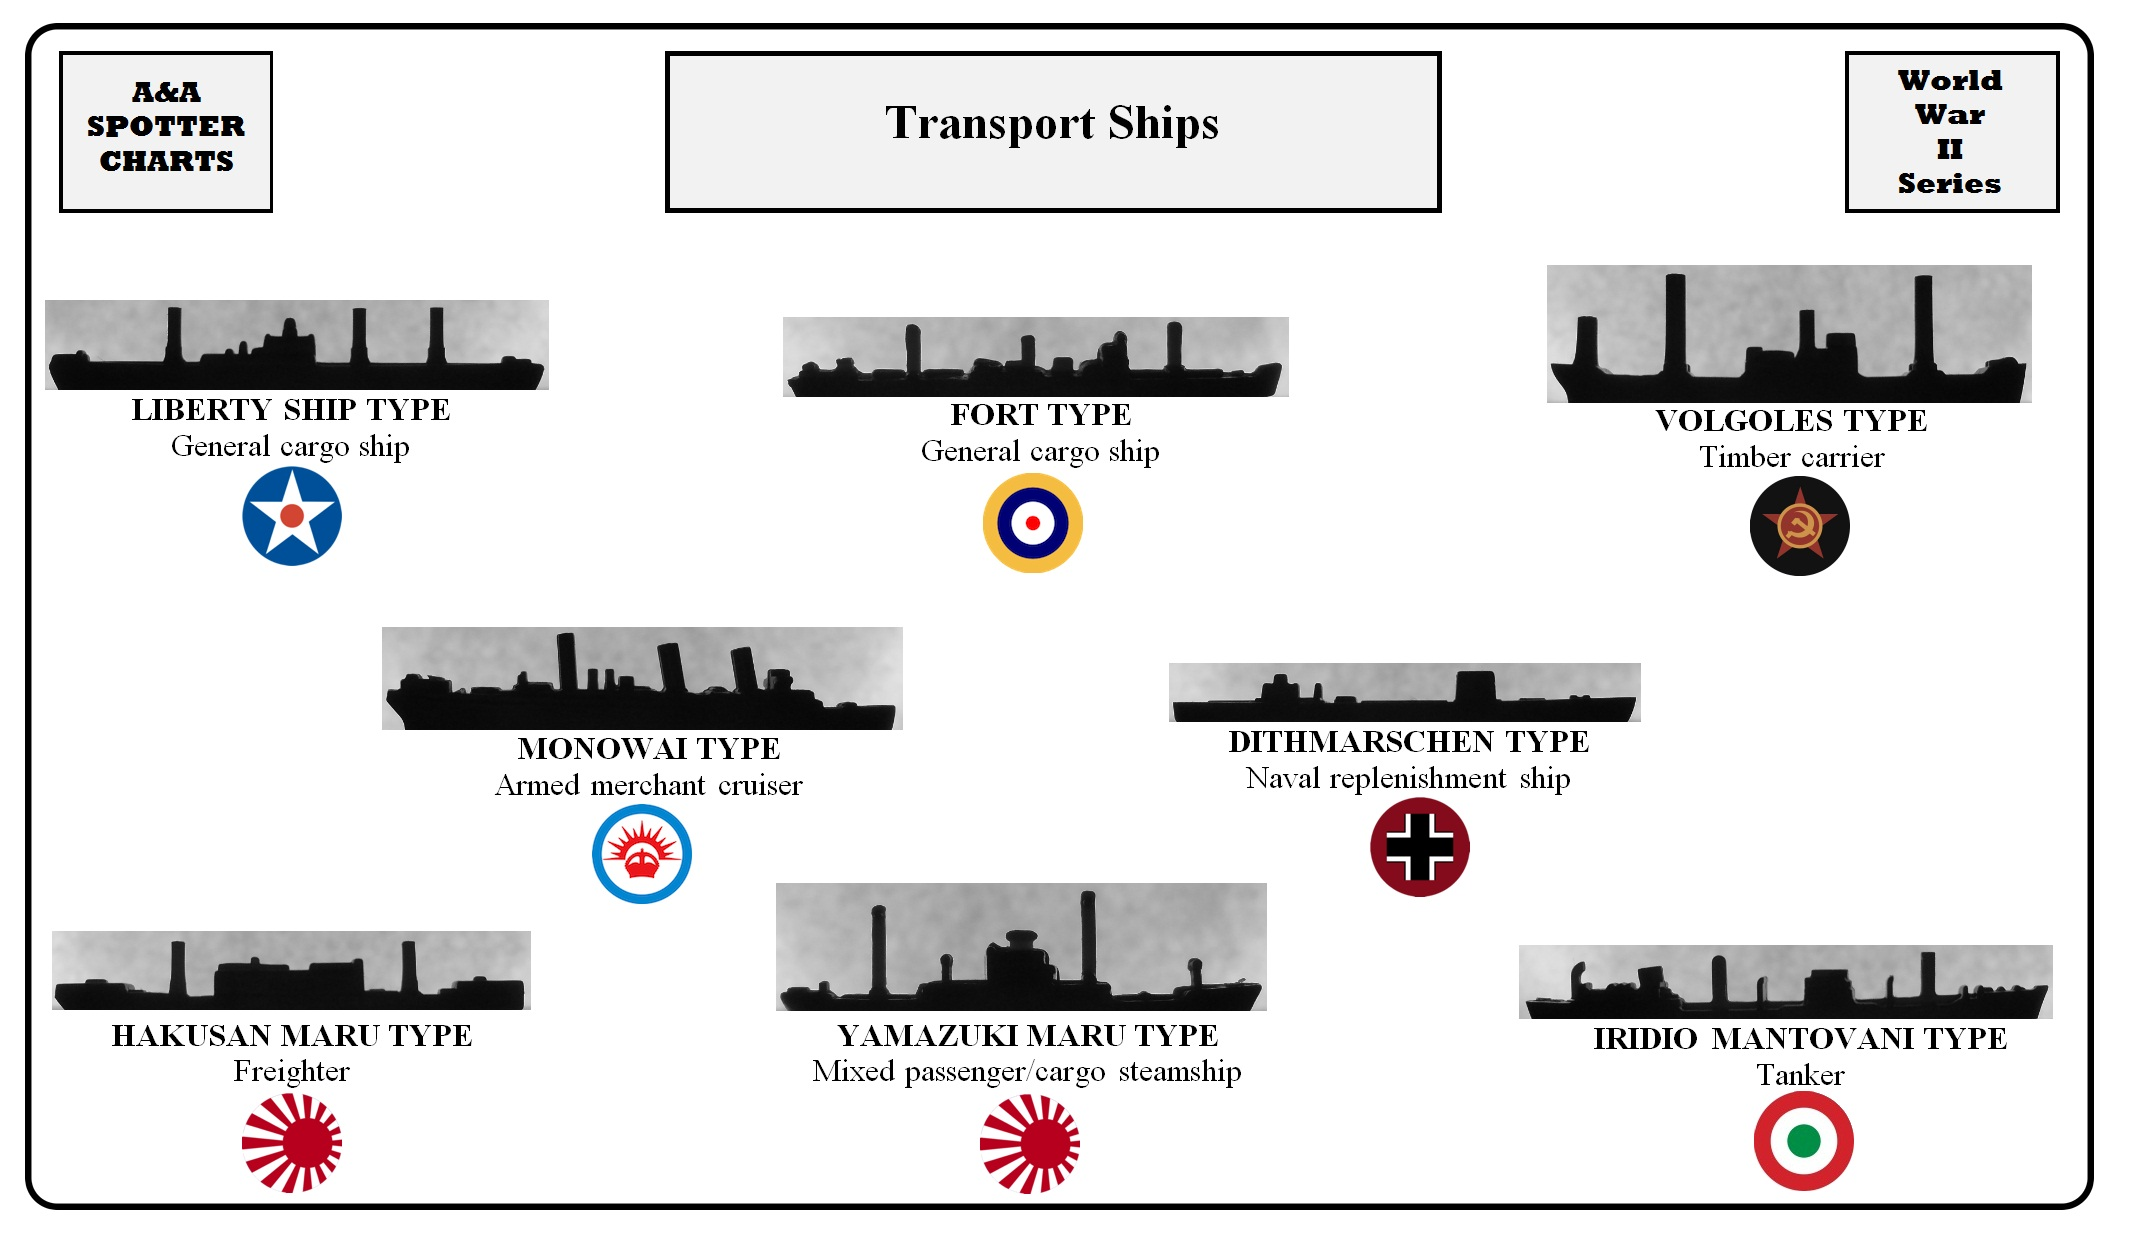 WW2-Sea-Transport Ships.jpg